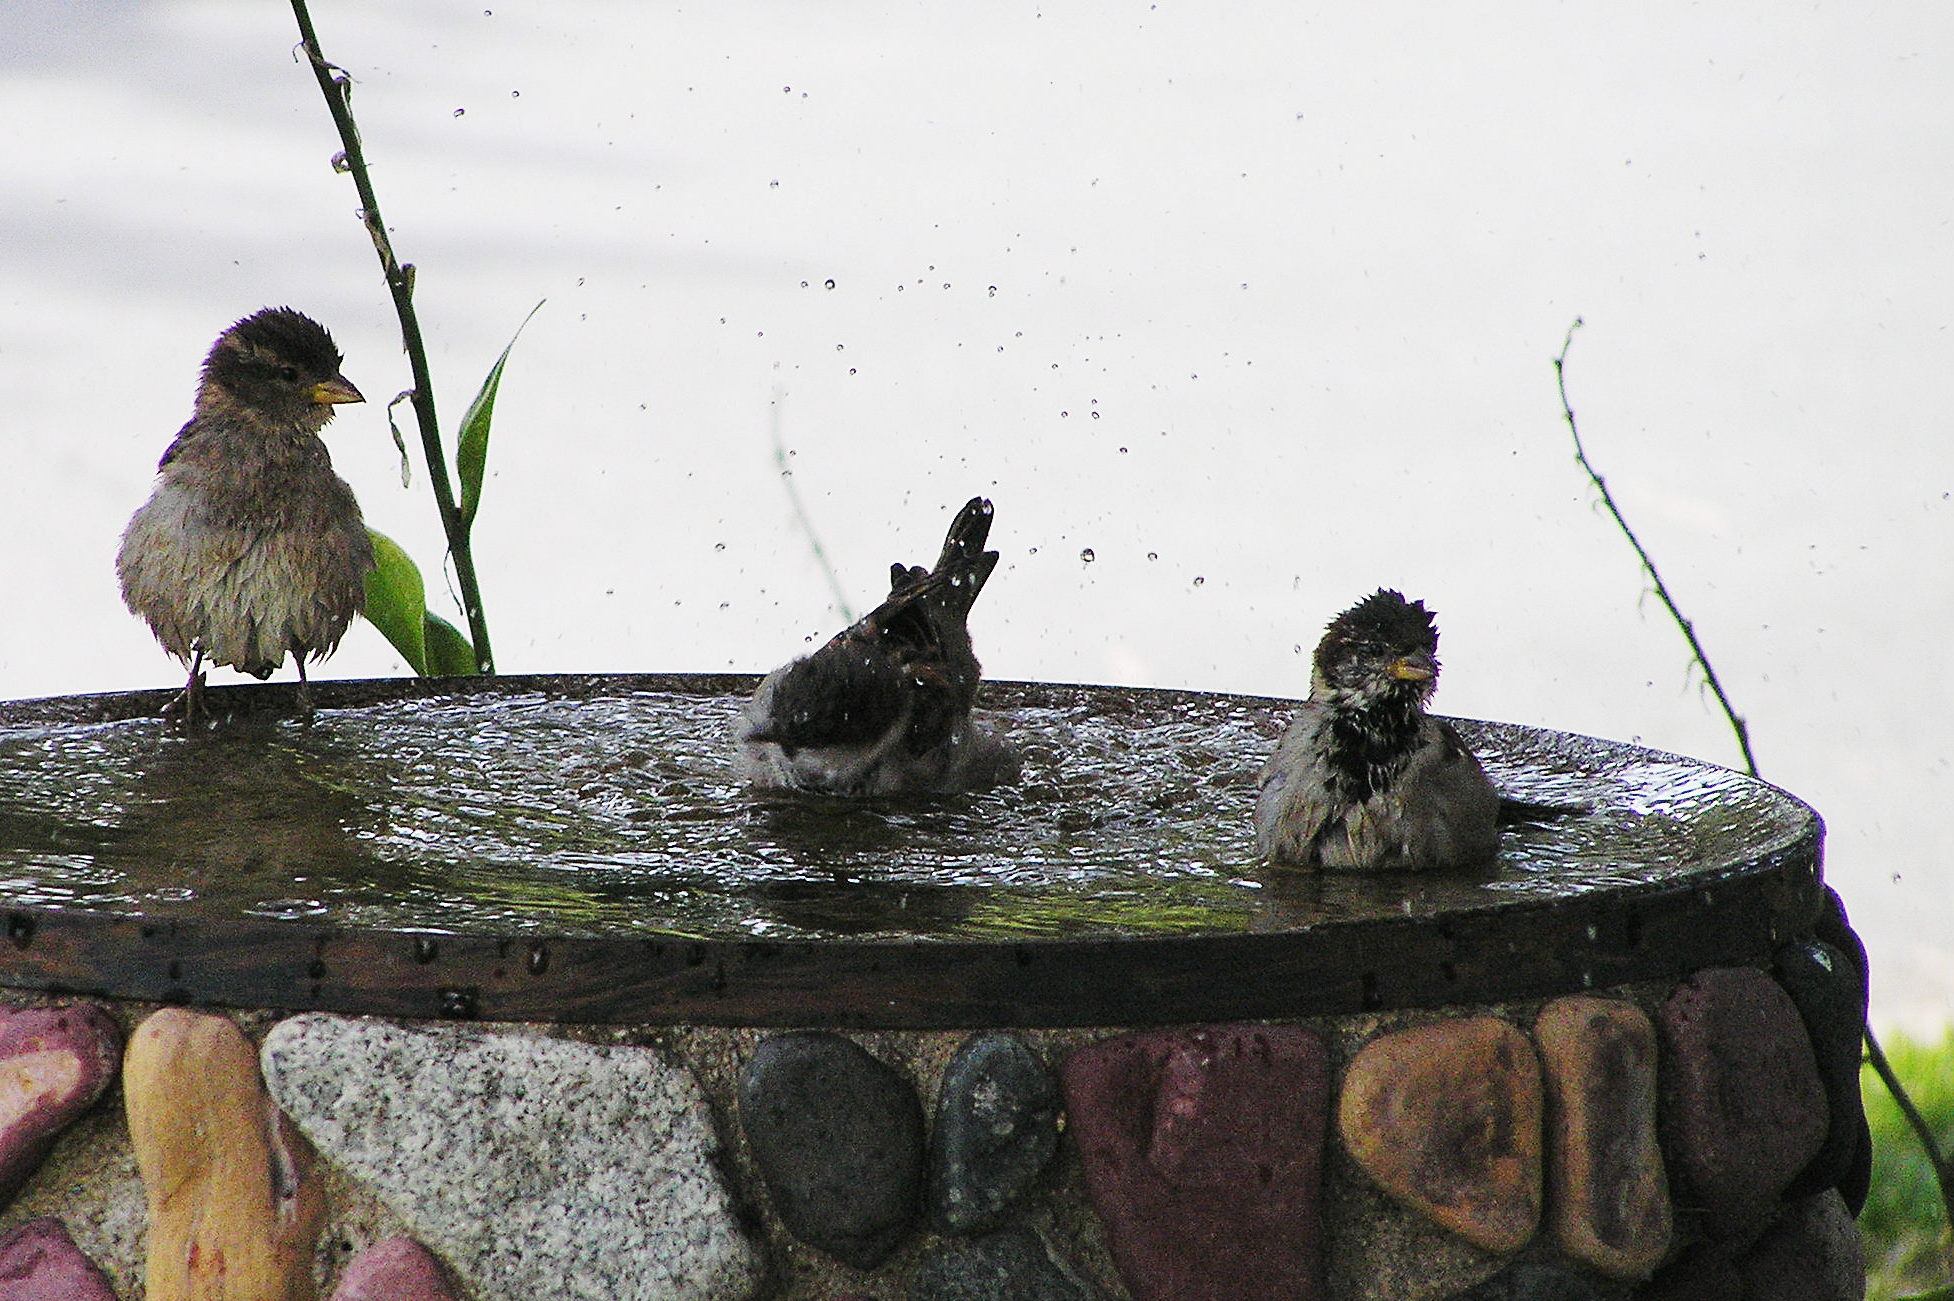 English: House Sparrows bathing